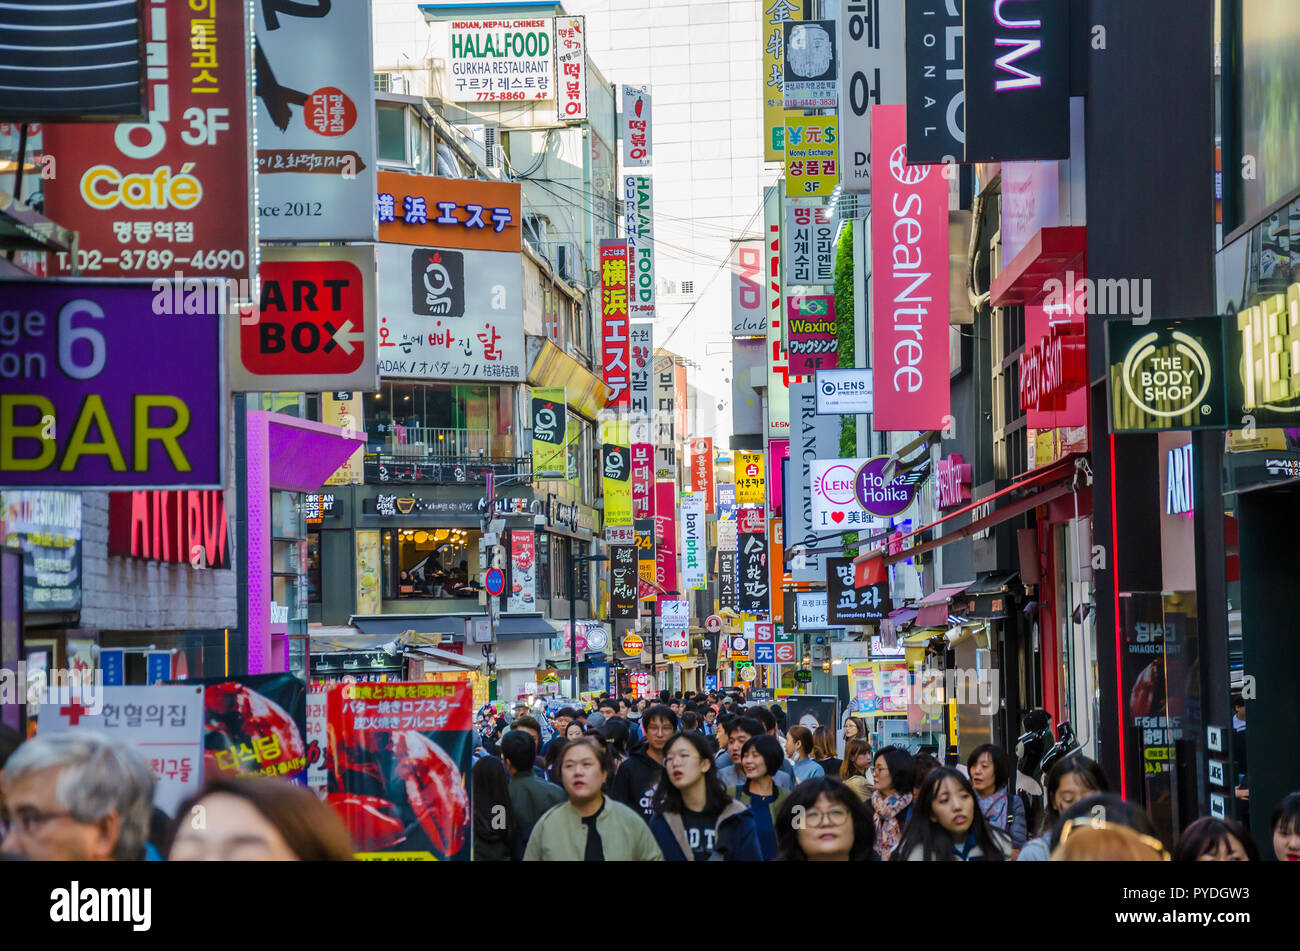 streets-of-myeongdong-in-seoul-south-korea-bust-with-shoppers-and-tourists-PYDGW3.jpg